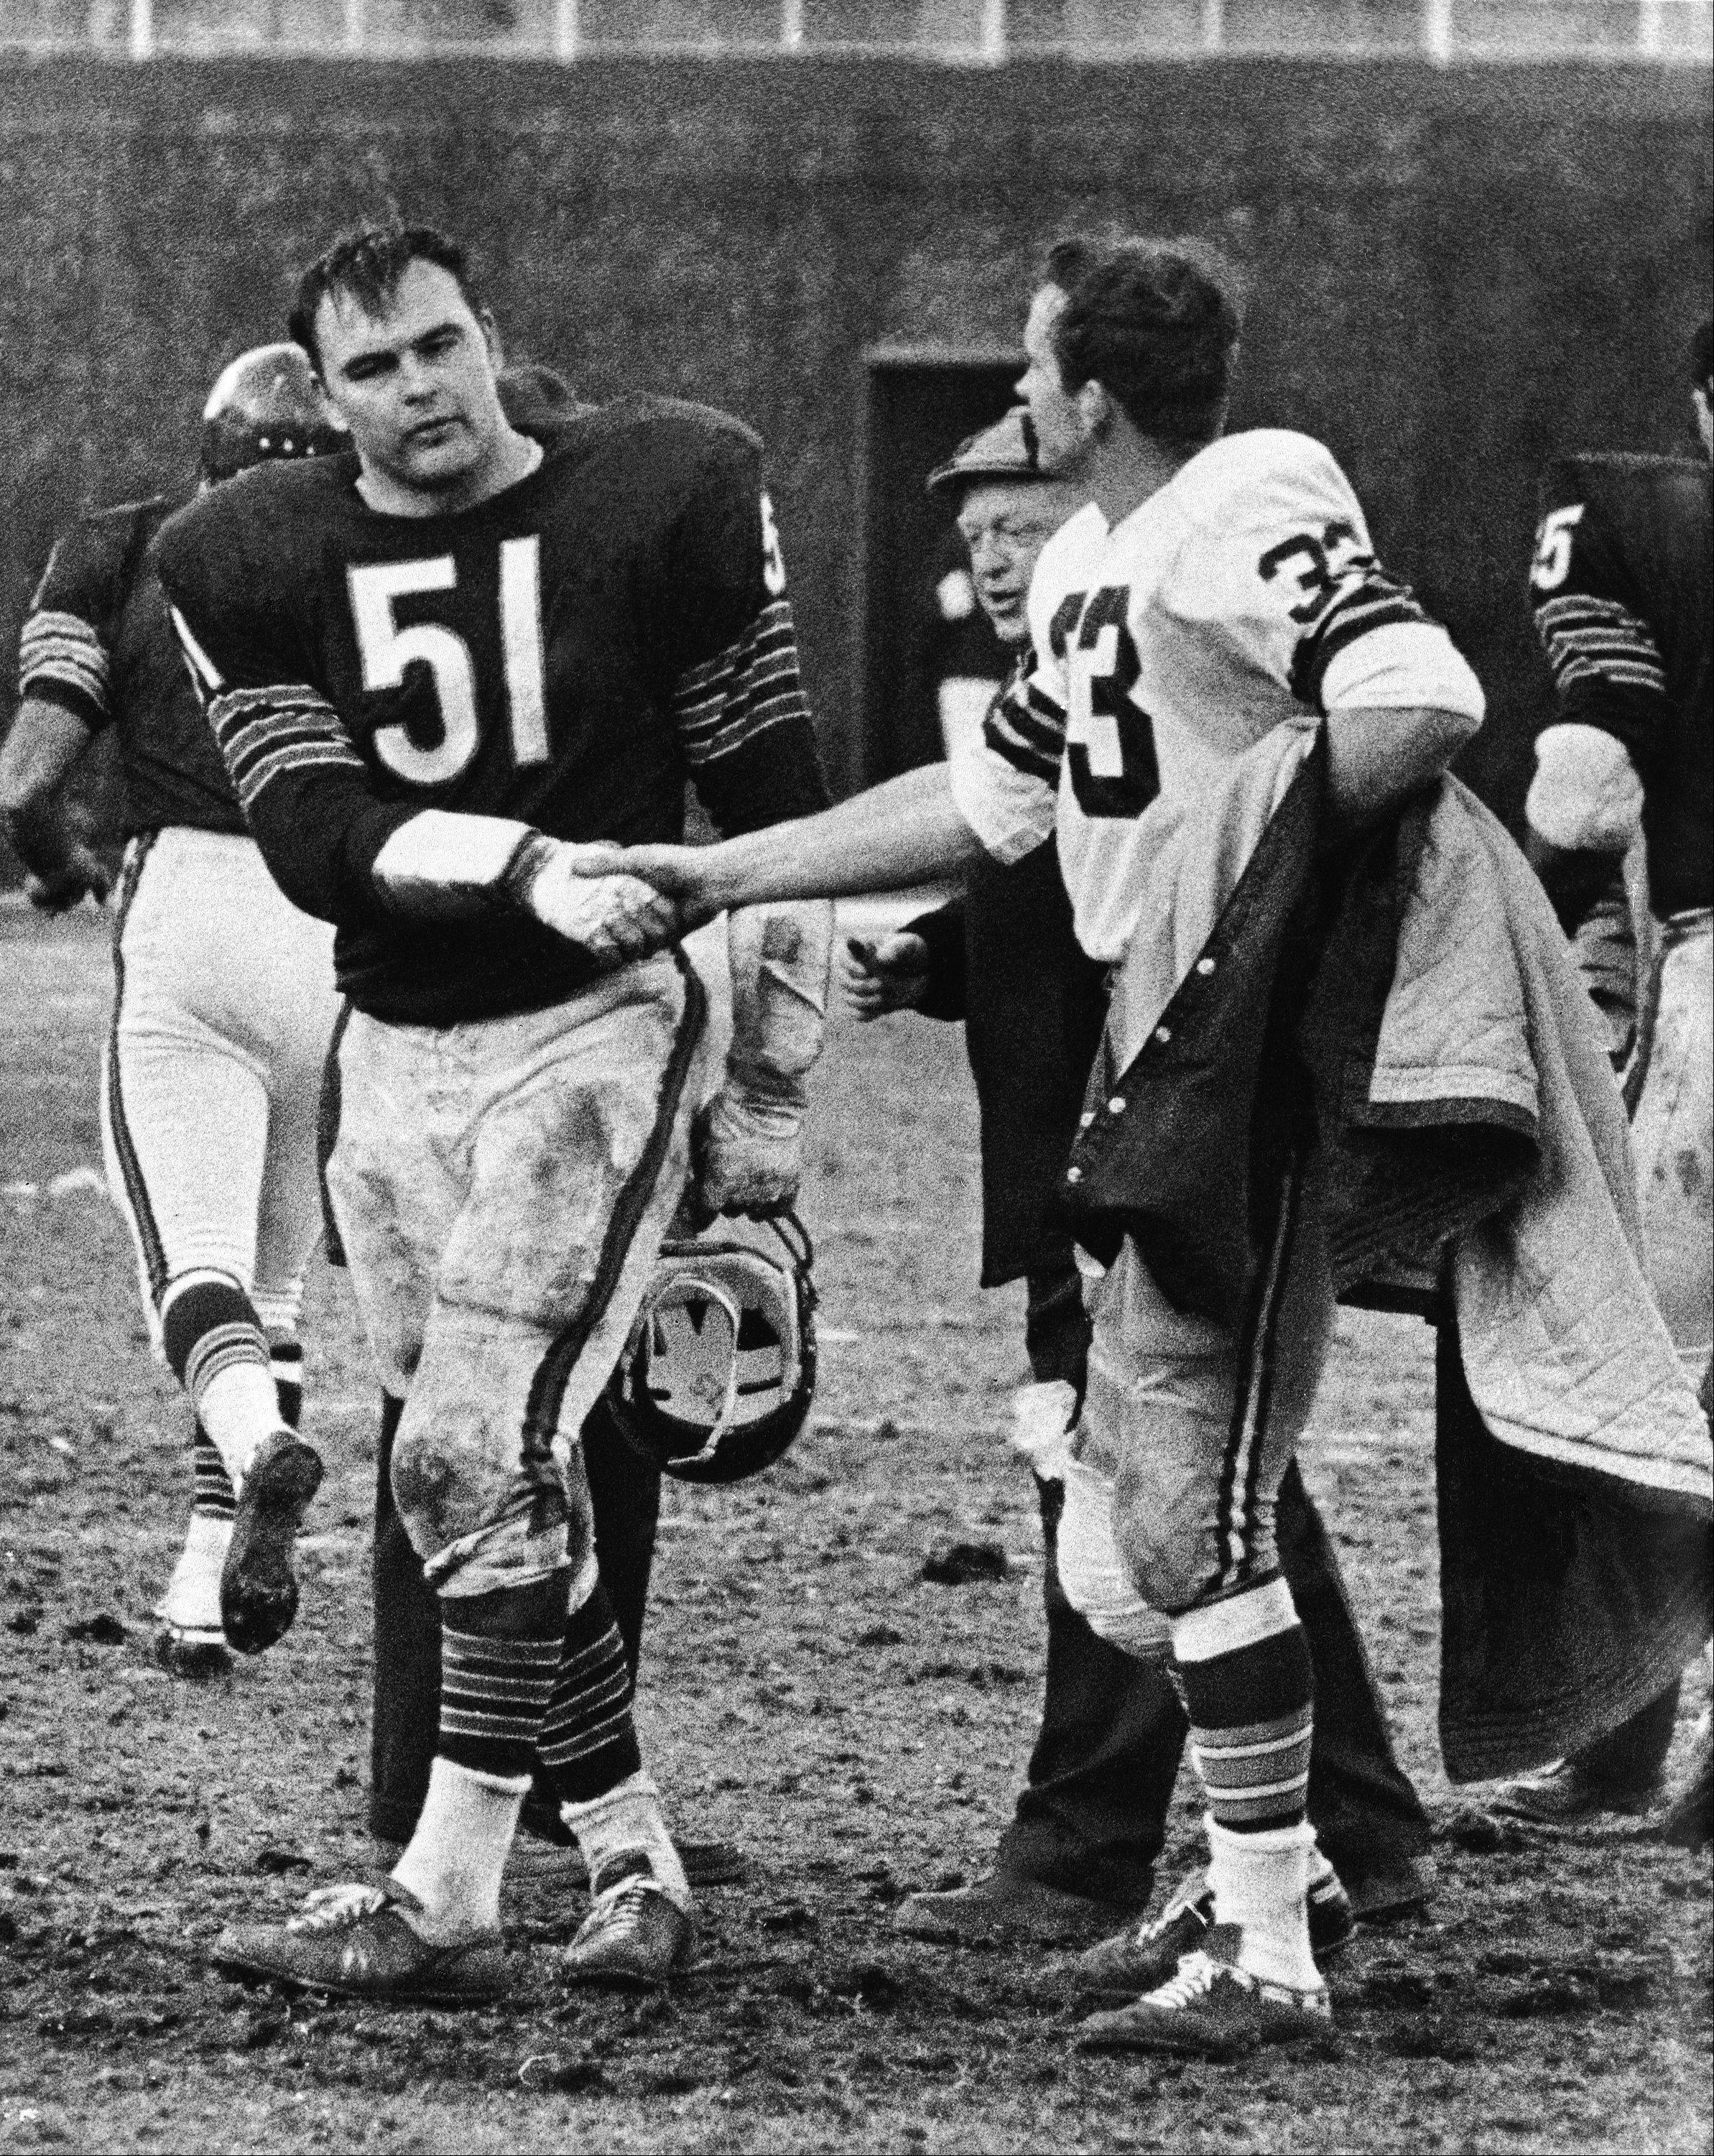 Mike North's #3: Dick Butkus